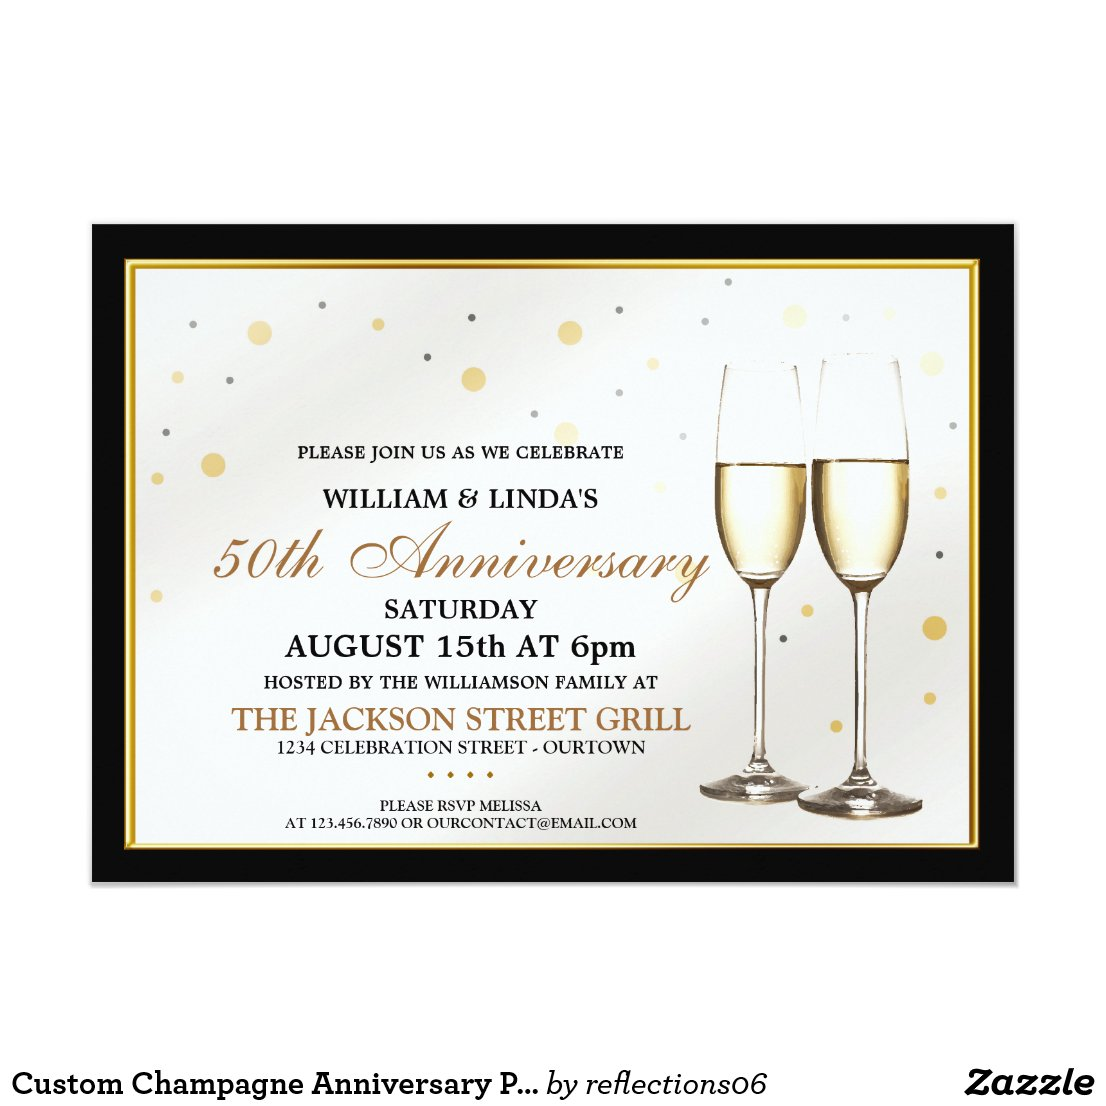 Custom Champagne Anniversary Party Invitations